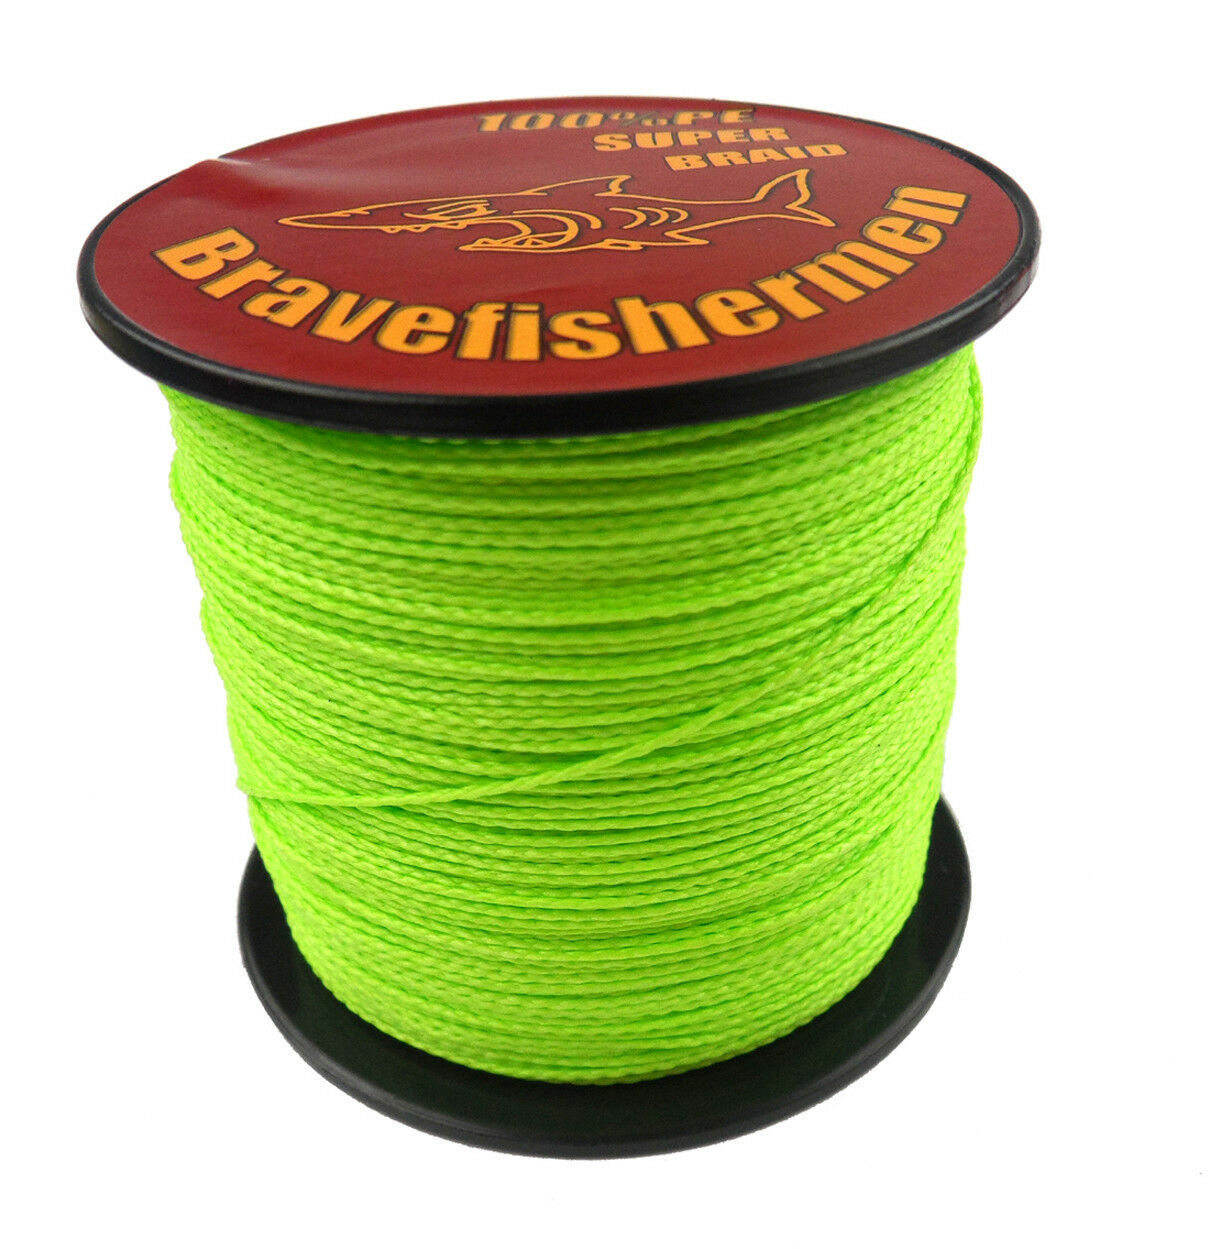 2017 Super Power Braided Green Fishing Line(330 yds- 1100yds)SELECT LB TEST Best